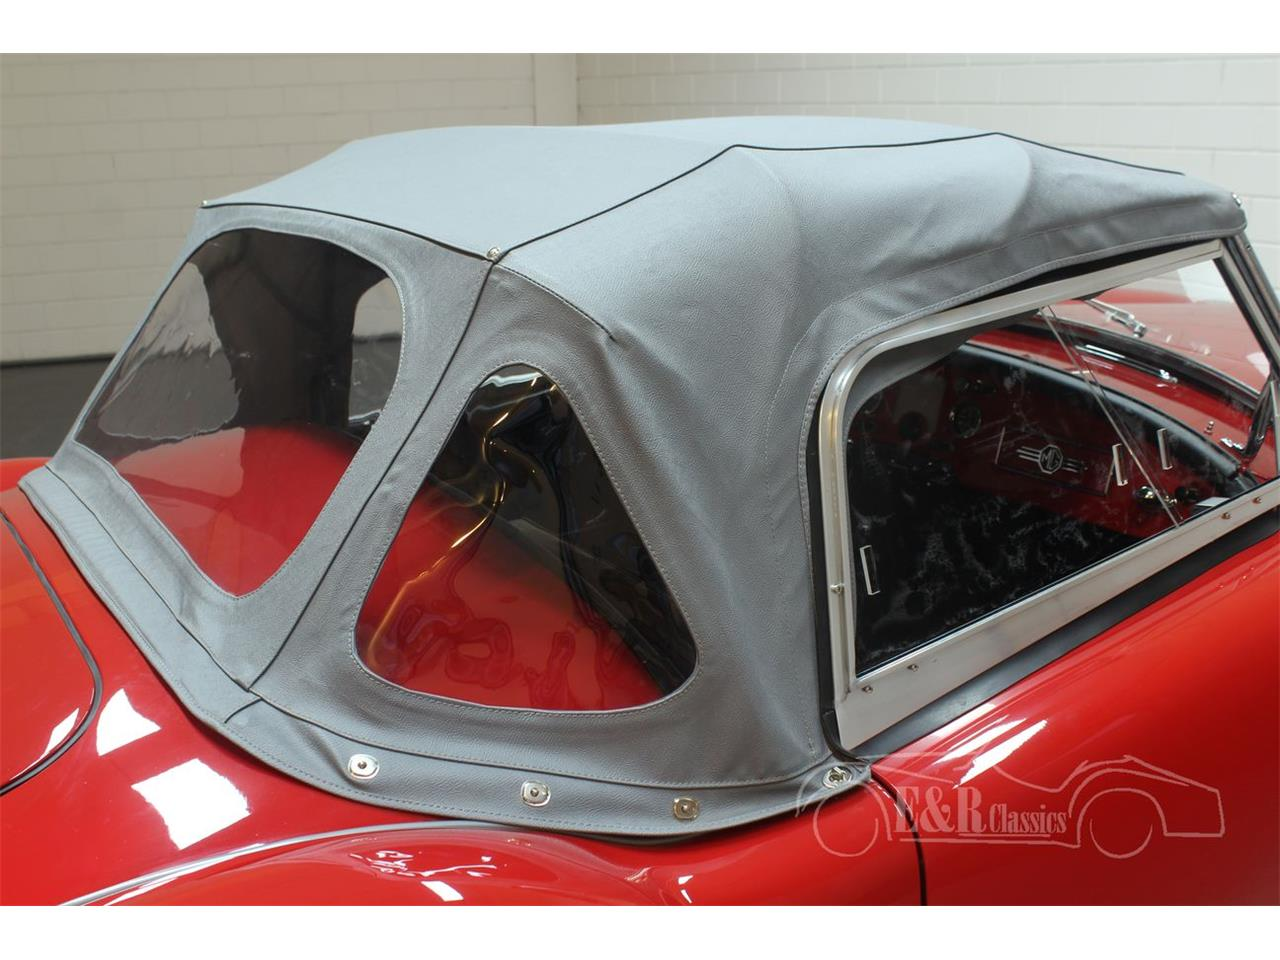 Large Picture of Classic 1959 MGA located in - Keine Angabe - - $56,500.00 Offered by E & R Classics - PGST